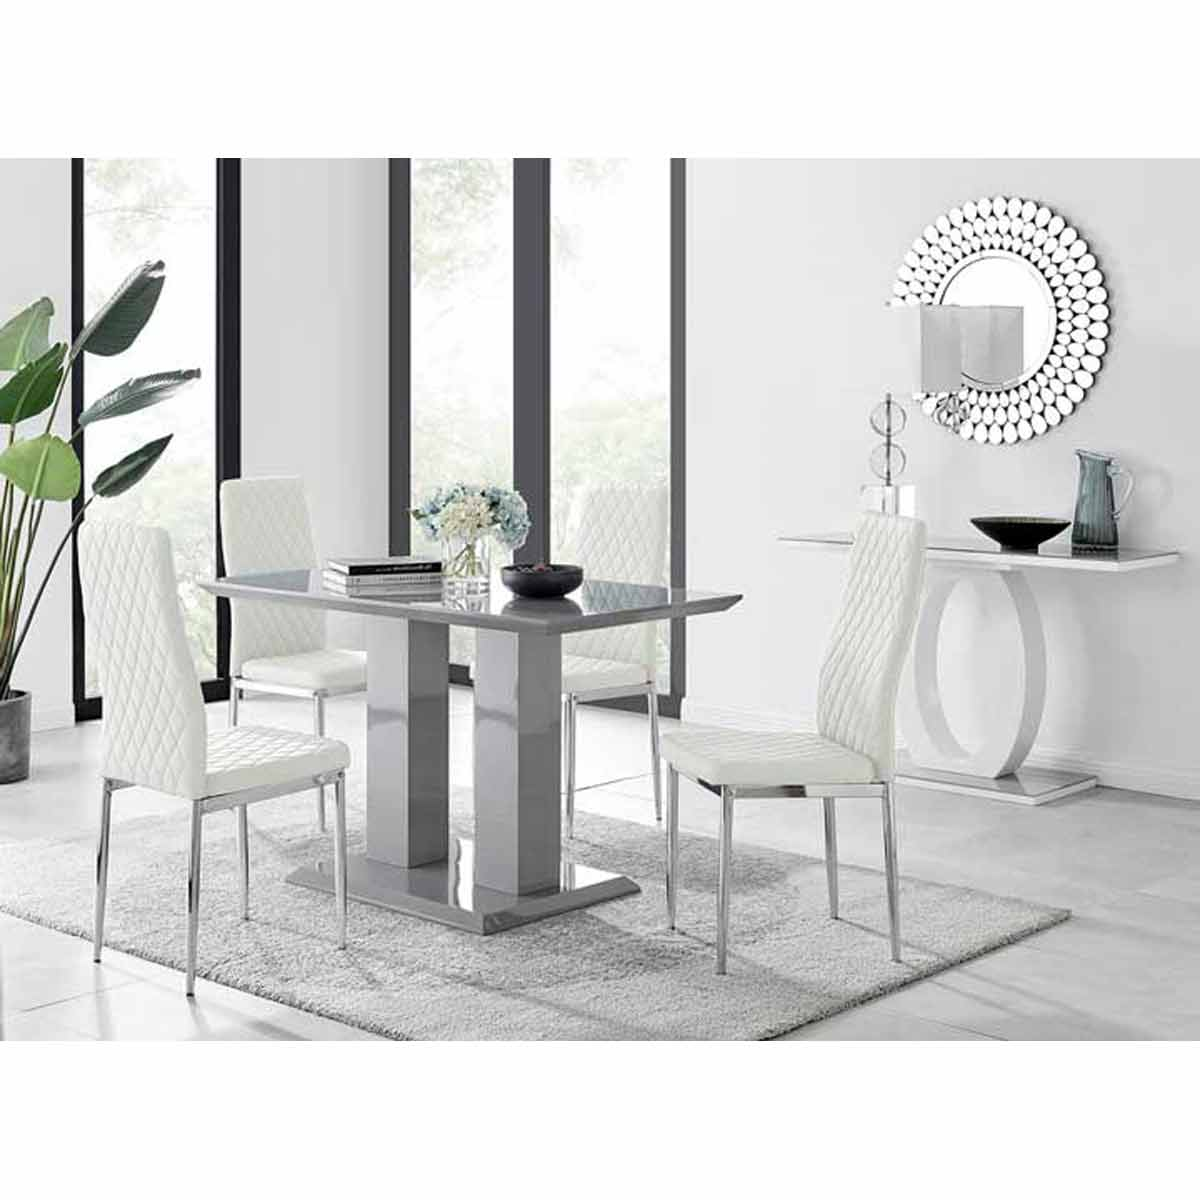 Furniture Box Imperia 4 Modern Grey High Gloss Dining Table And 4 White Modern Milan Chairs Set